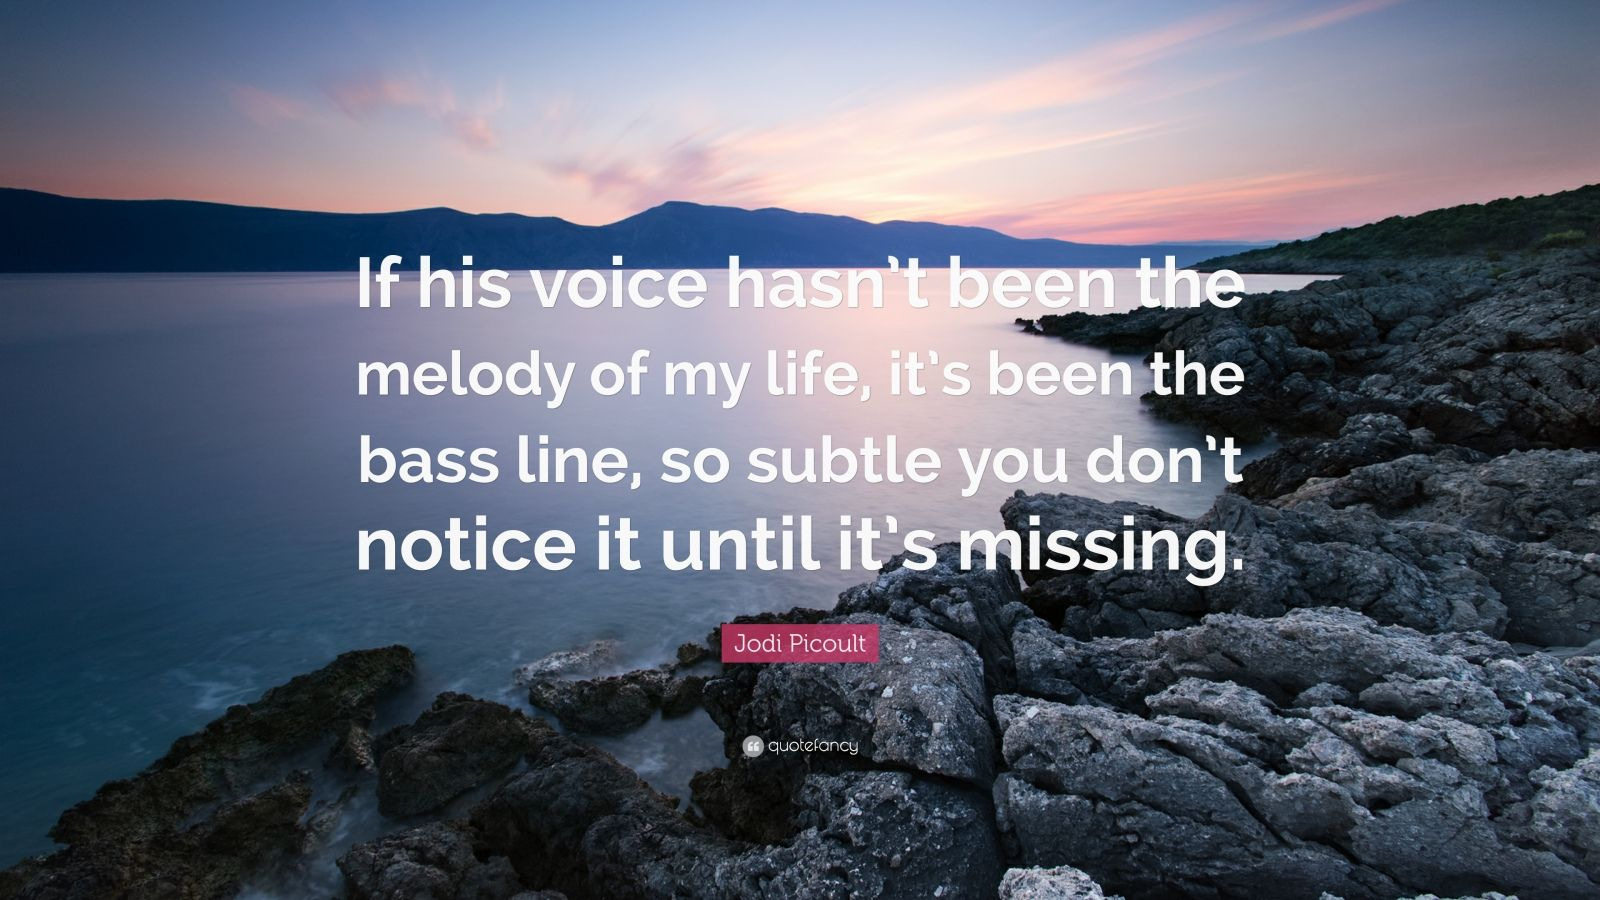 "Jodi Picoult Quote: ""If his voice hasn't been the melody of my life, it's been the bass line, so subtle you don't notice it until it's missing."""